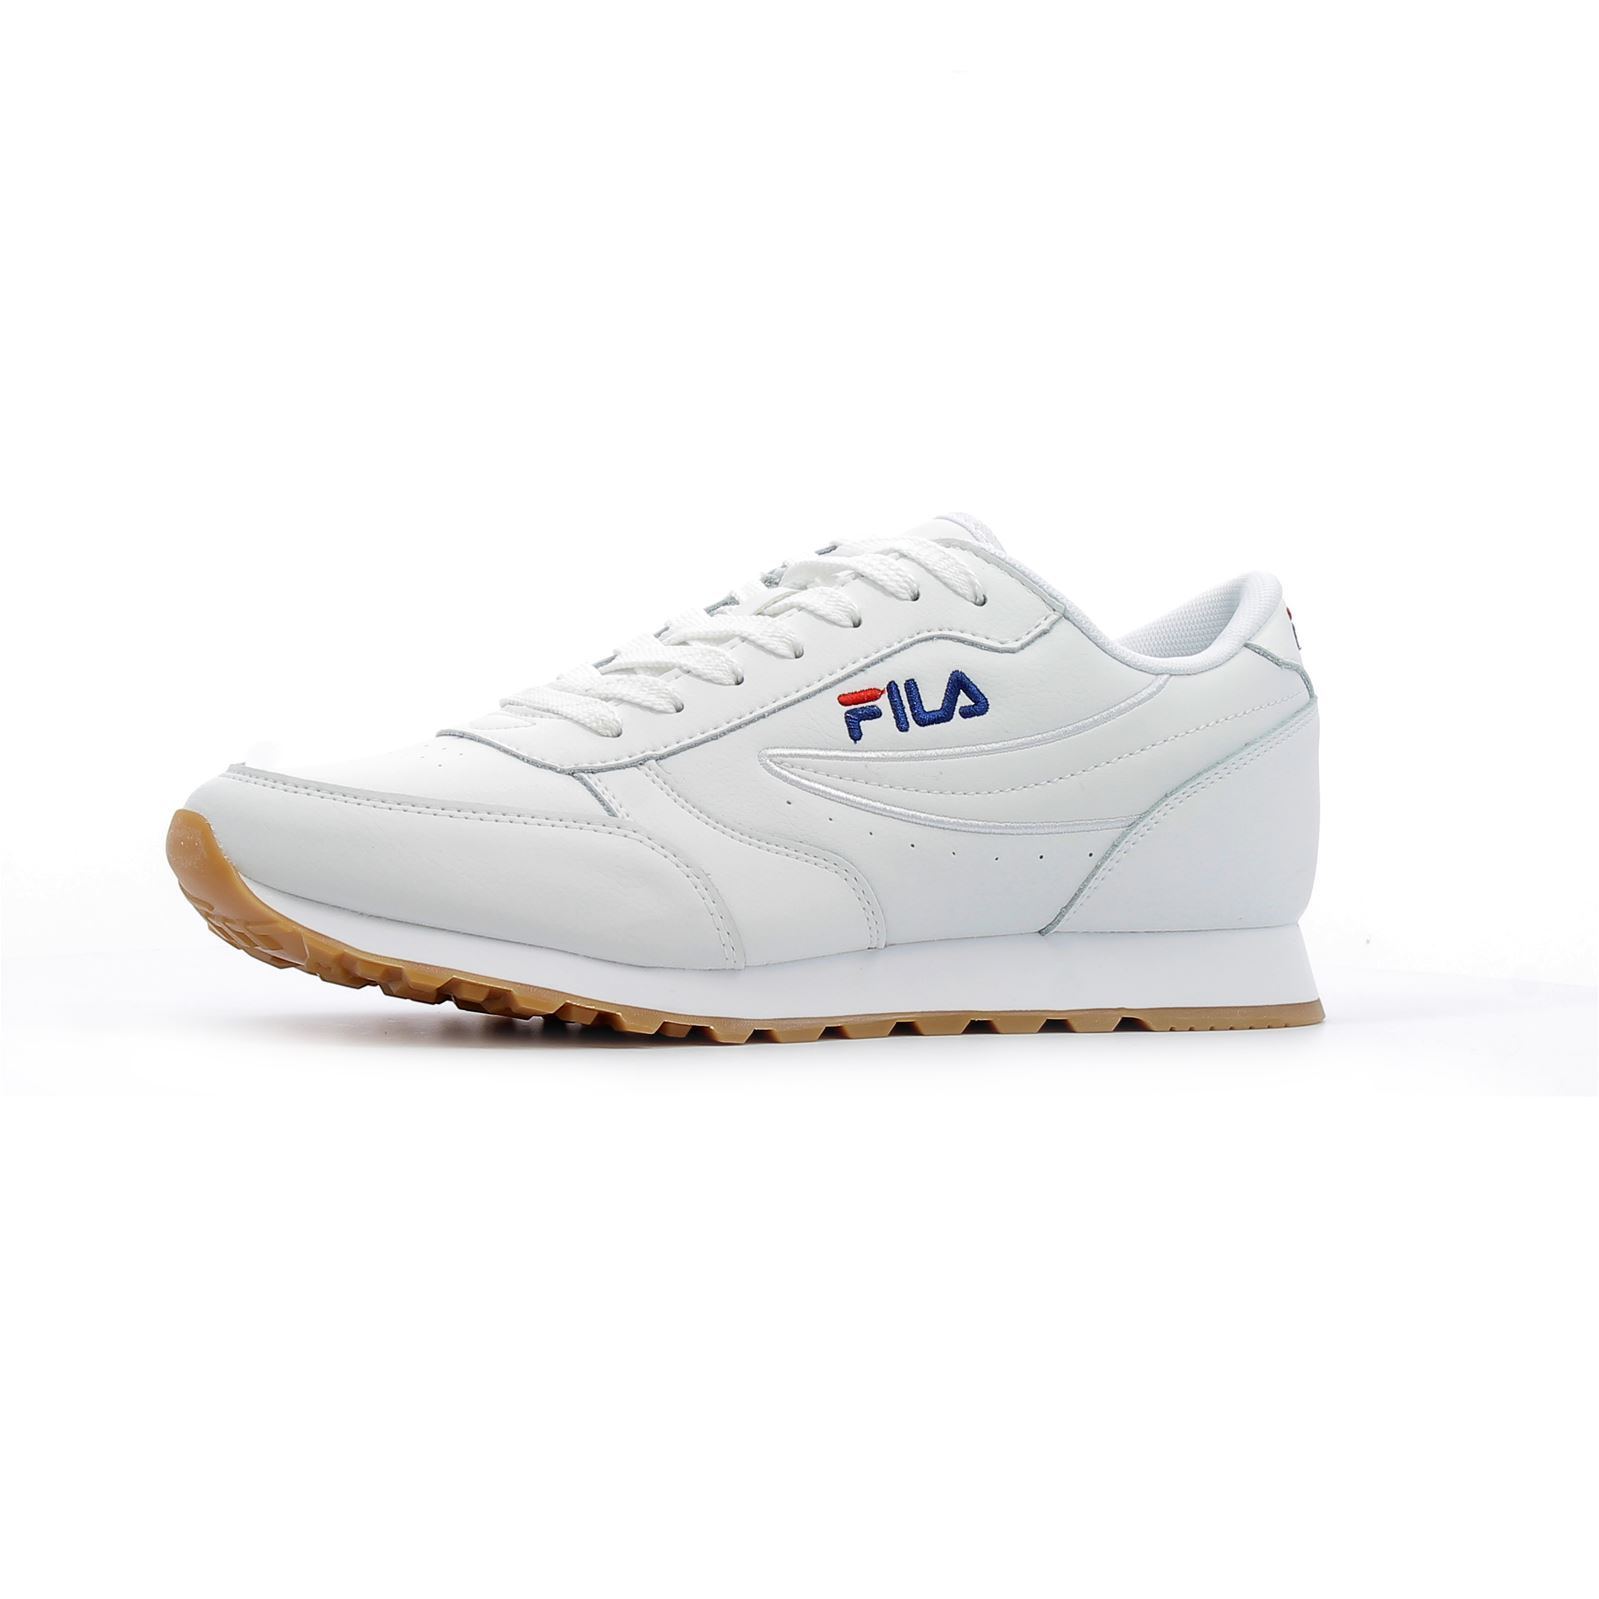 5154efa440d Fila Orbit jogger low - Baskets basses - blanc